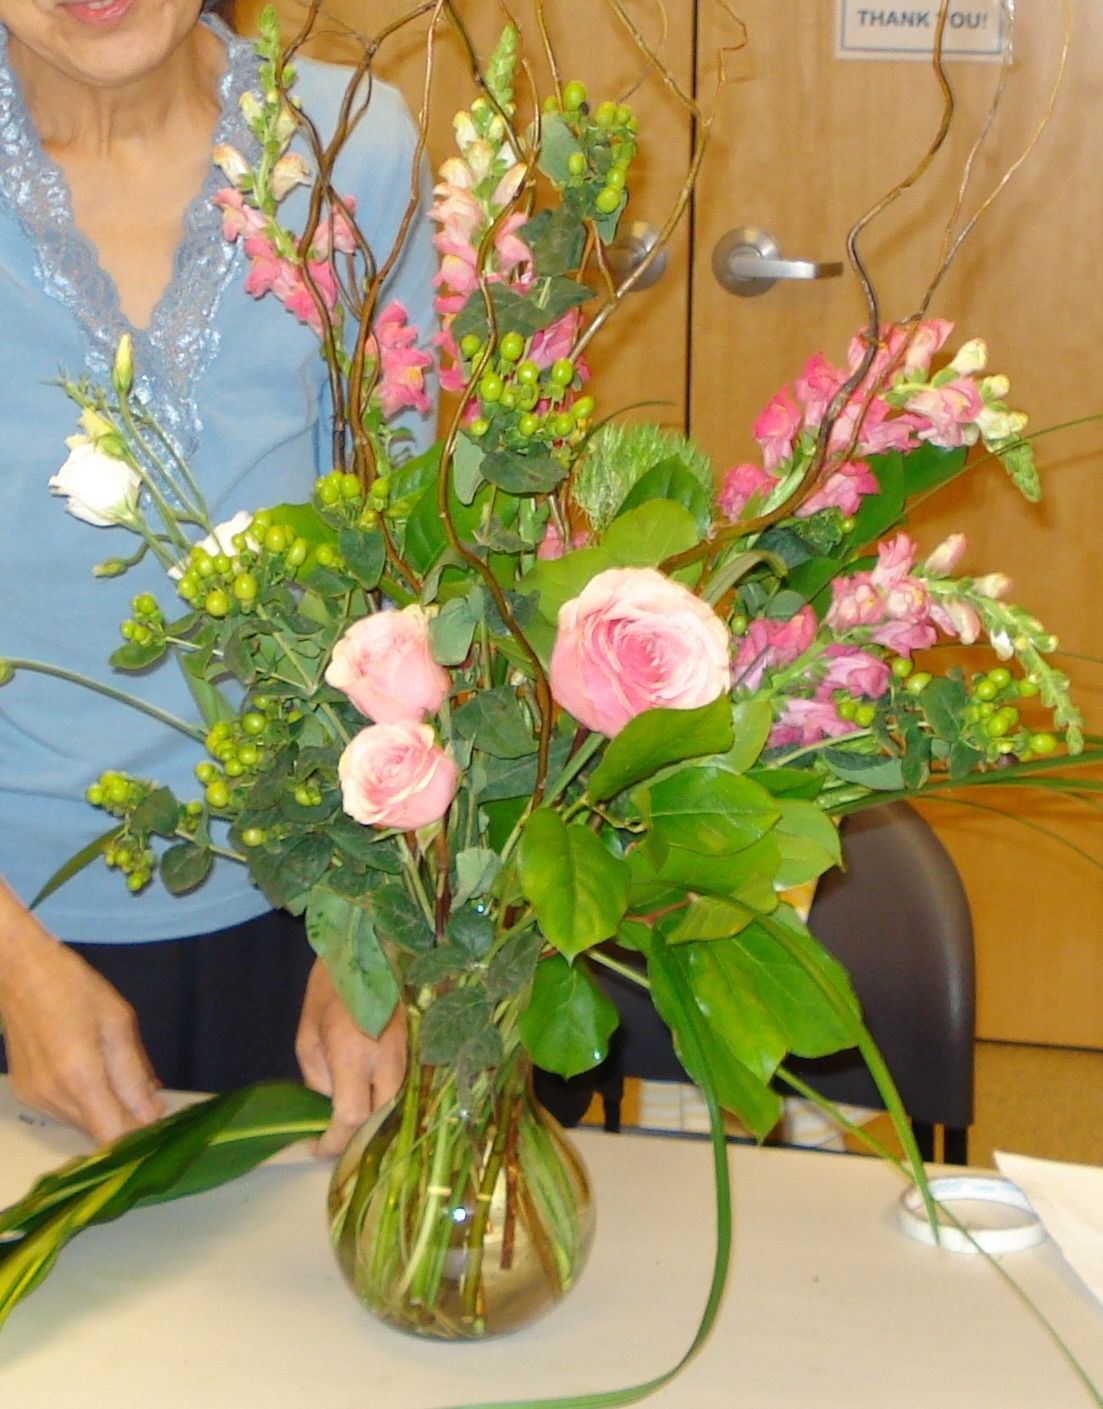 The beauty of flowers at cancer support communitys flower power the beauty of flowers at cancer support communitys flower power social activity izmirmasajfo Images